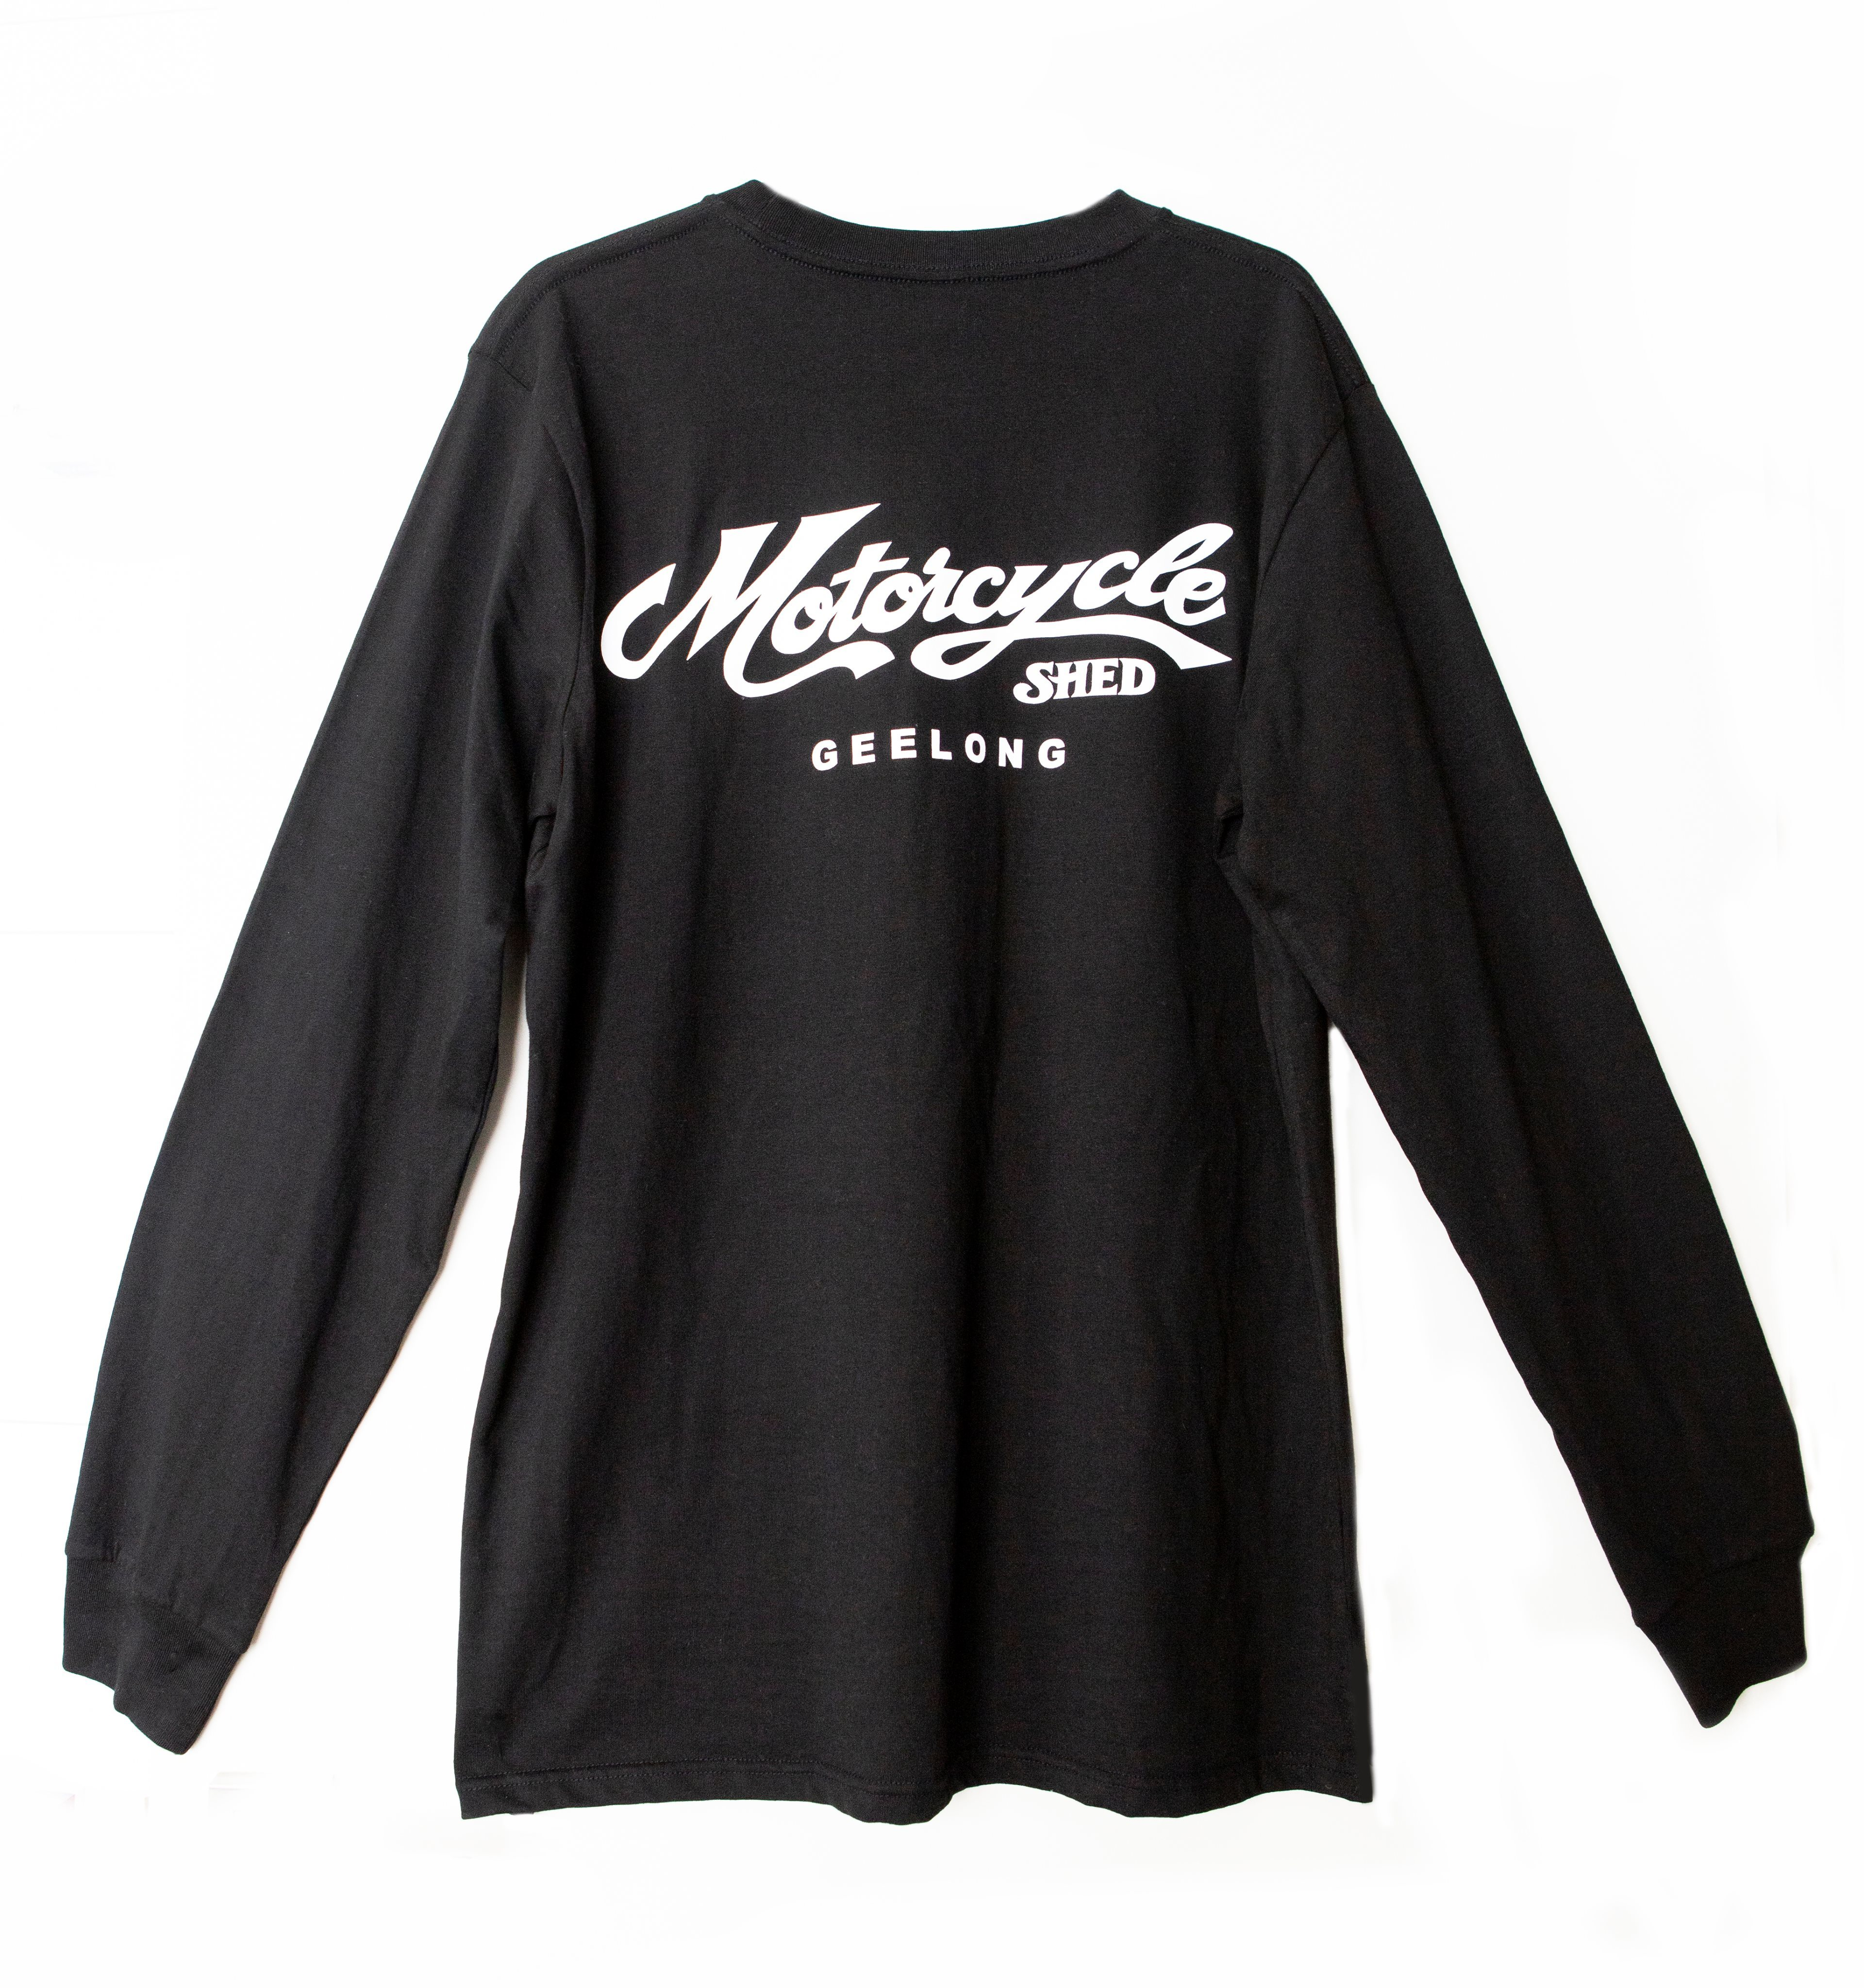 Motorcycle Shed 100% Cotton Top LONG - Black